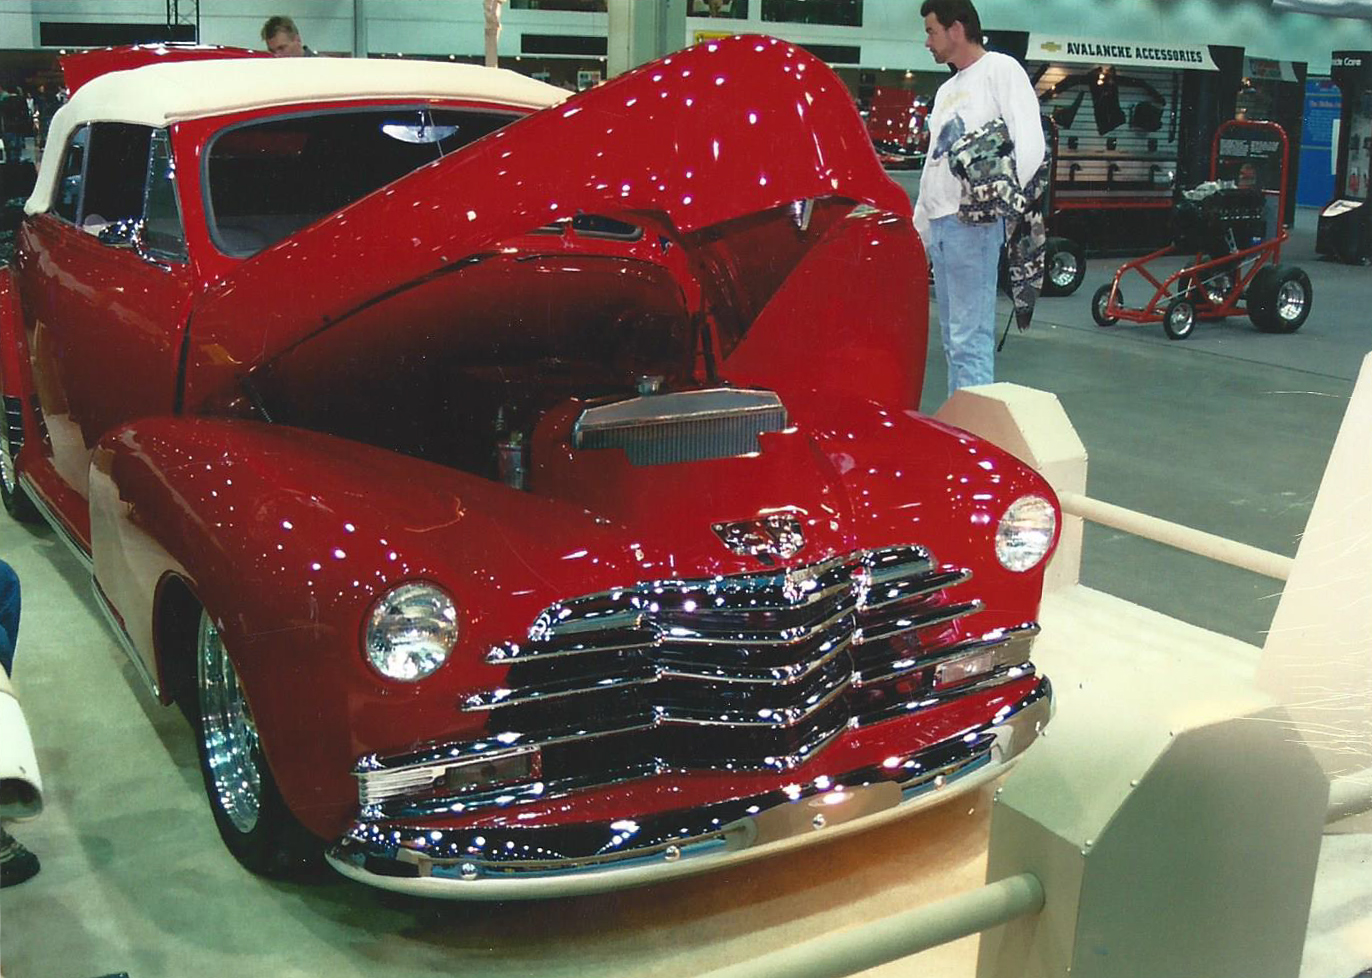 Red car at Hempton's goodrich body shop